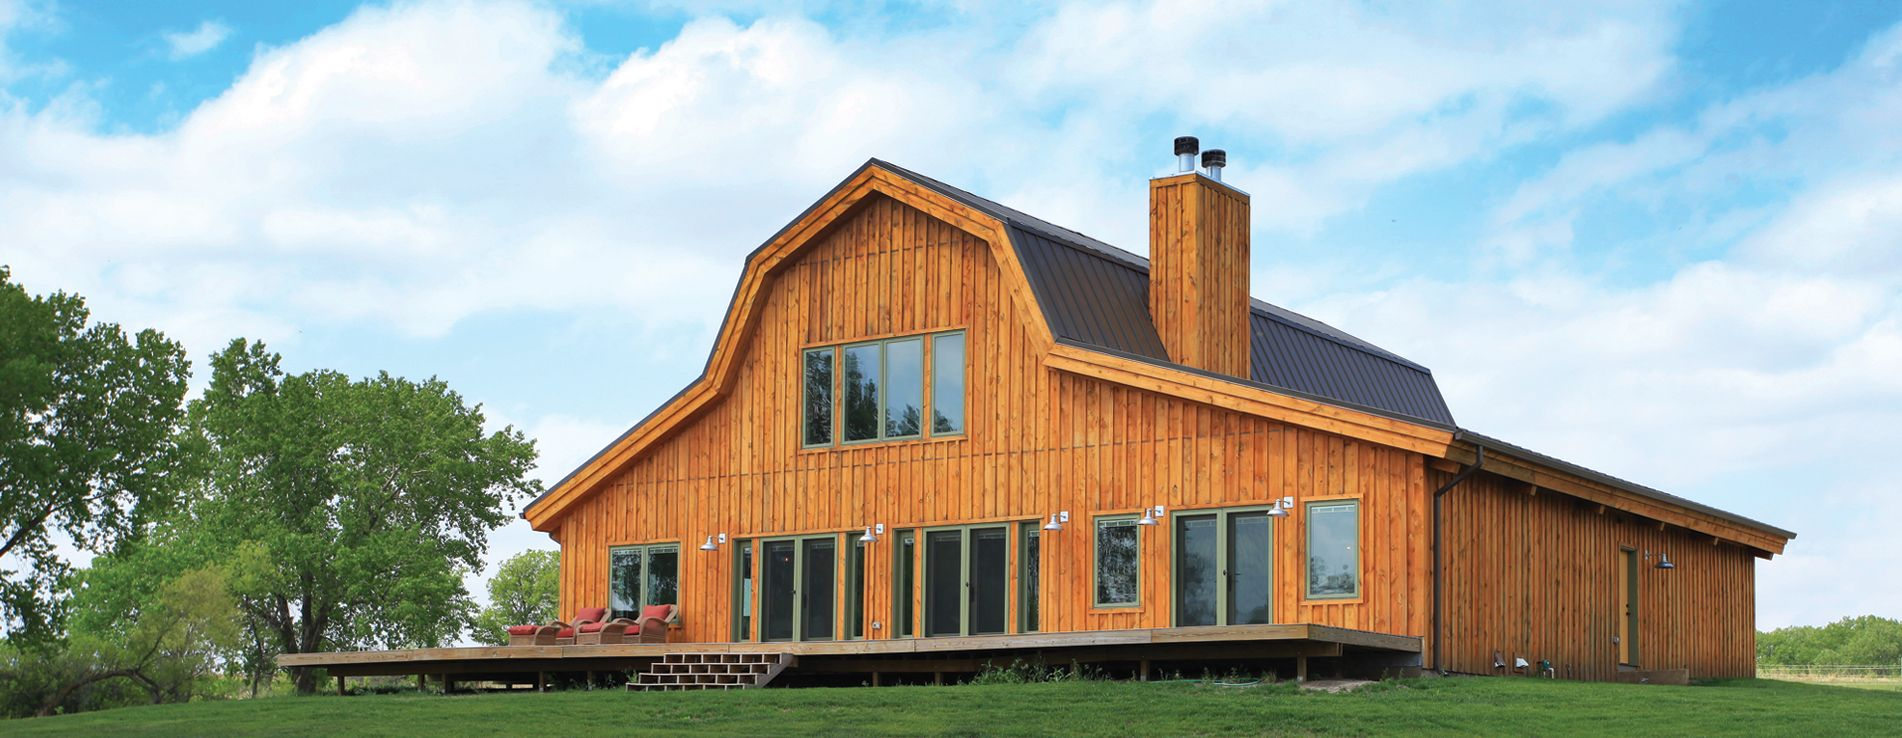 Awesome 5 Great Two Story Barndominium Floor Plans Now With Zoom Download Free Architecture Designs Rallybritishbridgeorg